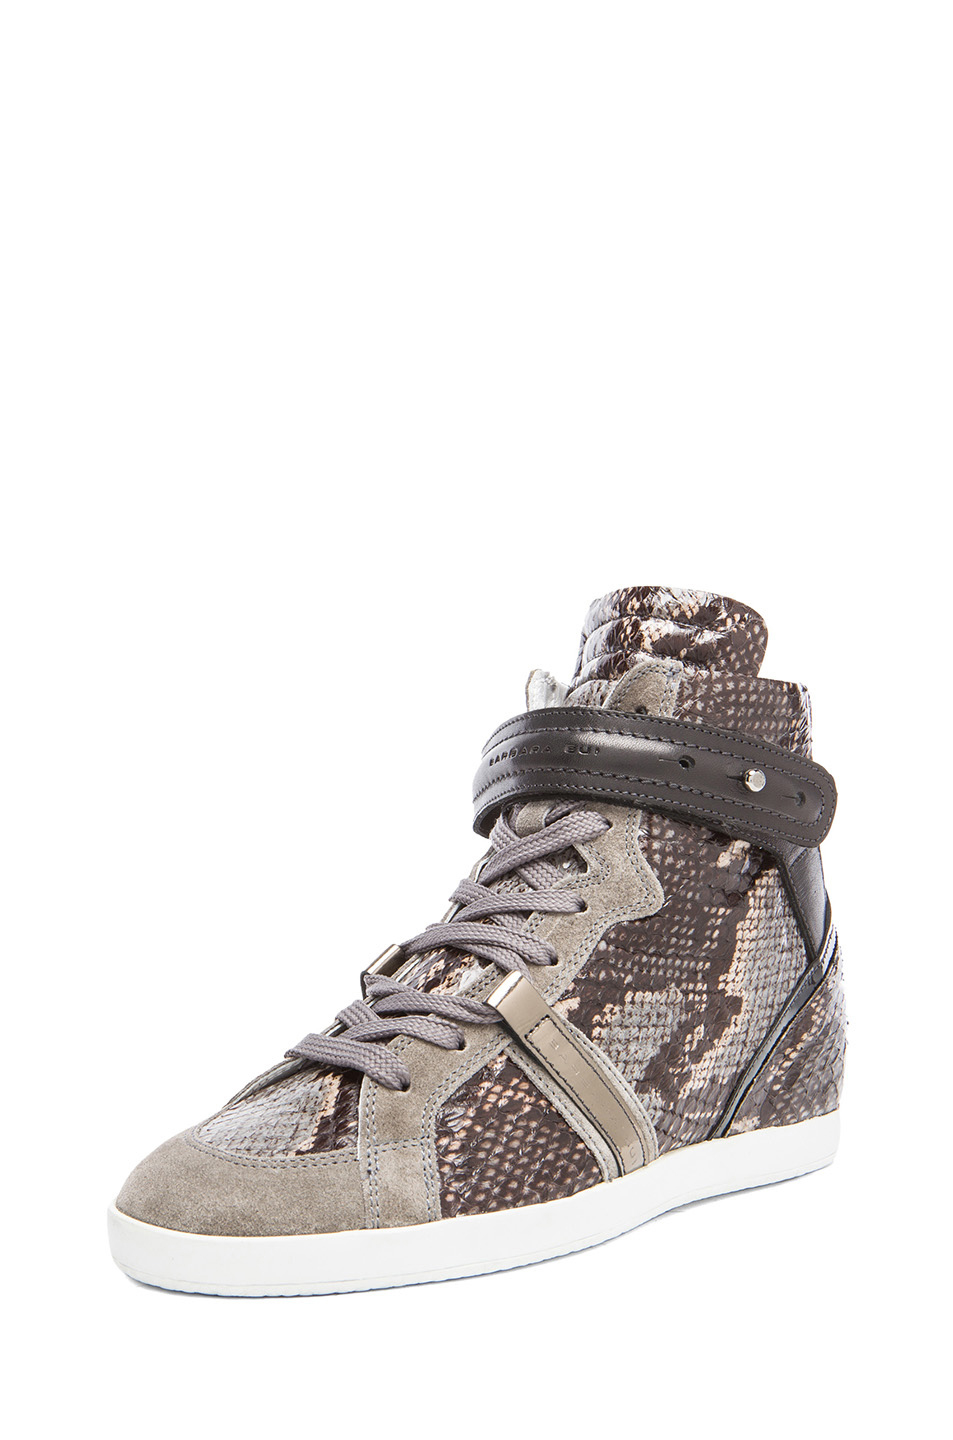 Barbara Bui Brocade High-Top Sneakers clearance good selling cheap sale low price sale pick a best cZRTc27